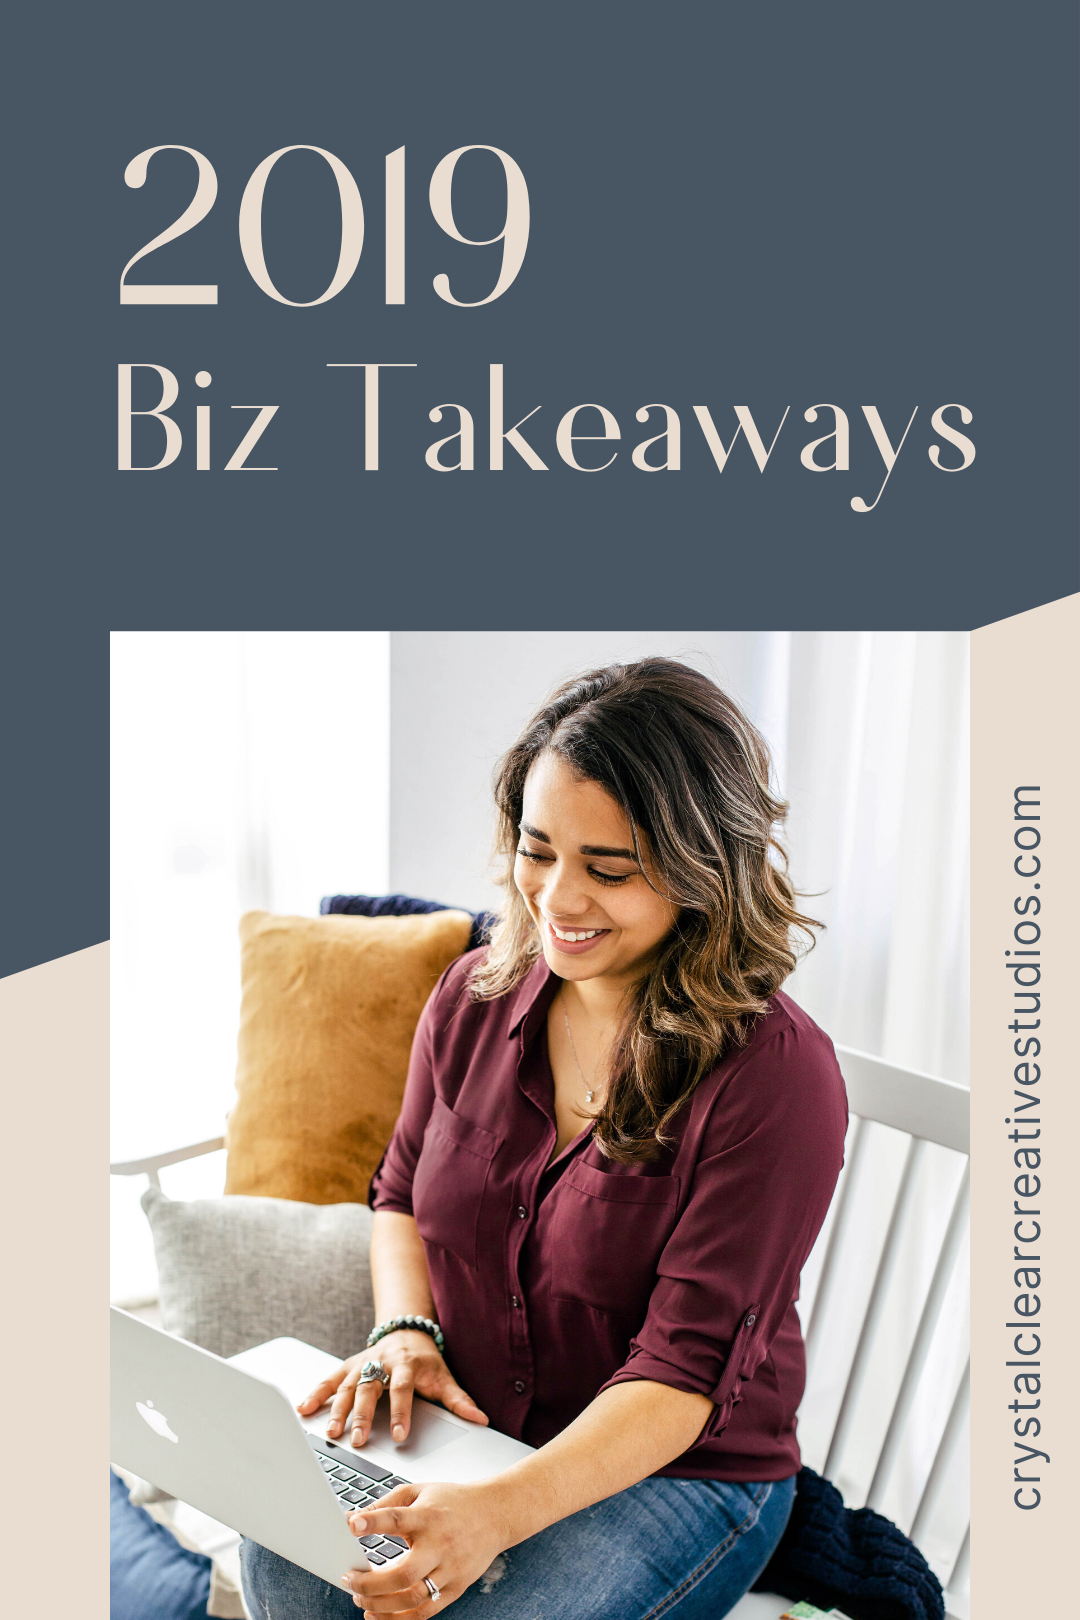 01-16-20 3 Biz Takeaways for 2019